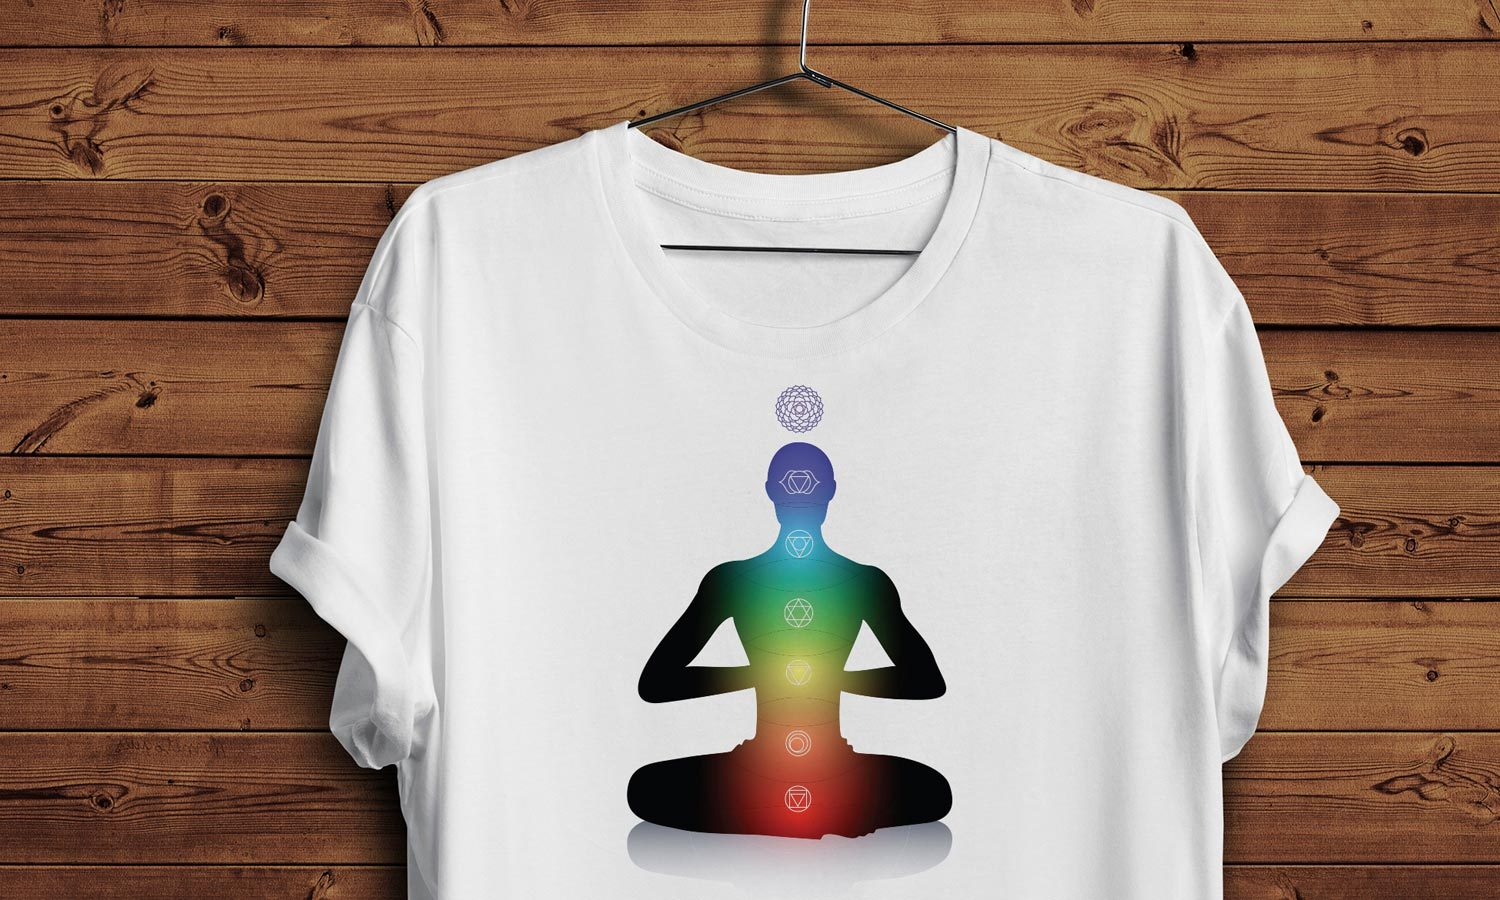 Man with Light Chakras - Printed T-Shirt for Men, Women and Kids - TS008